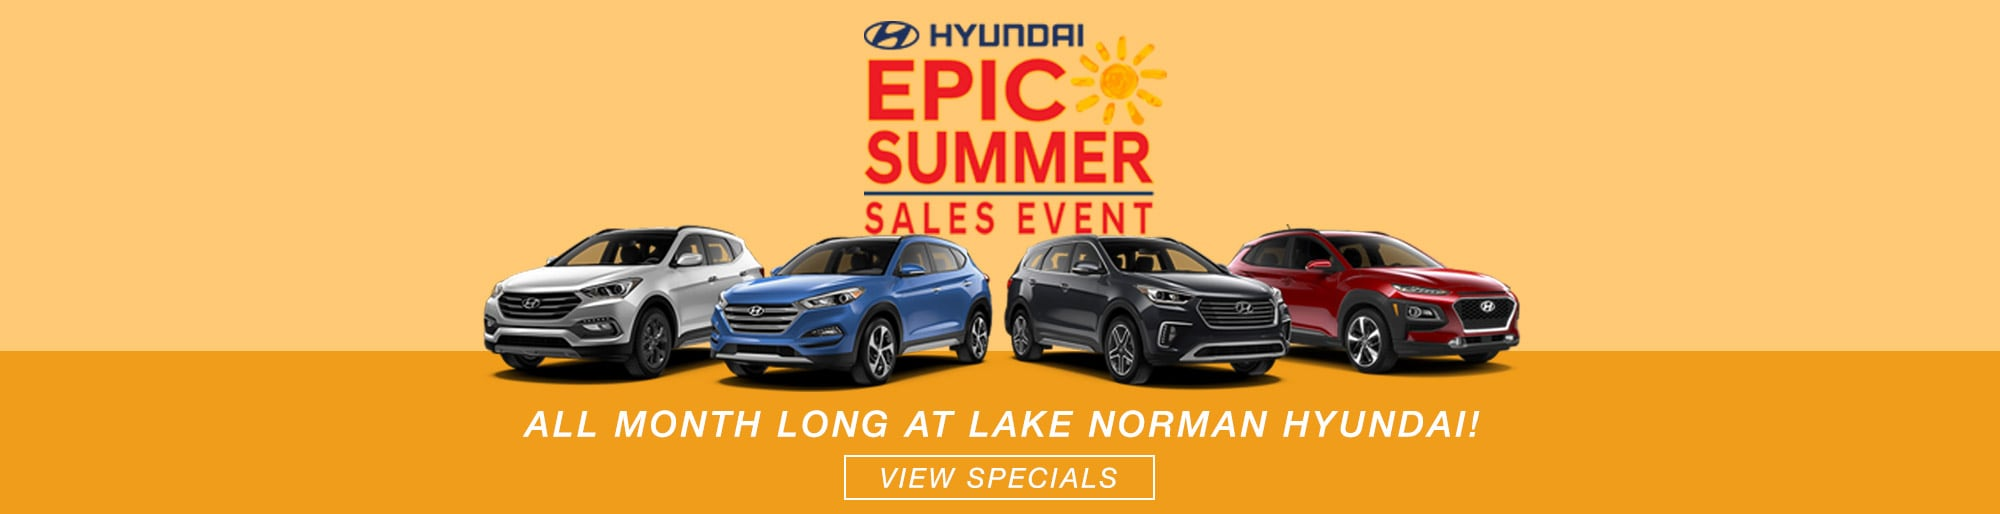 Lake Norman Hyundai | New & Used Cars for Sale Near Charlotte